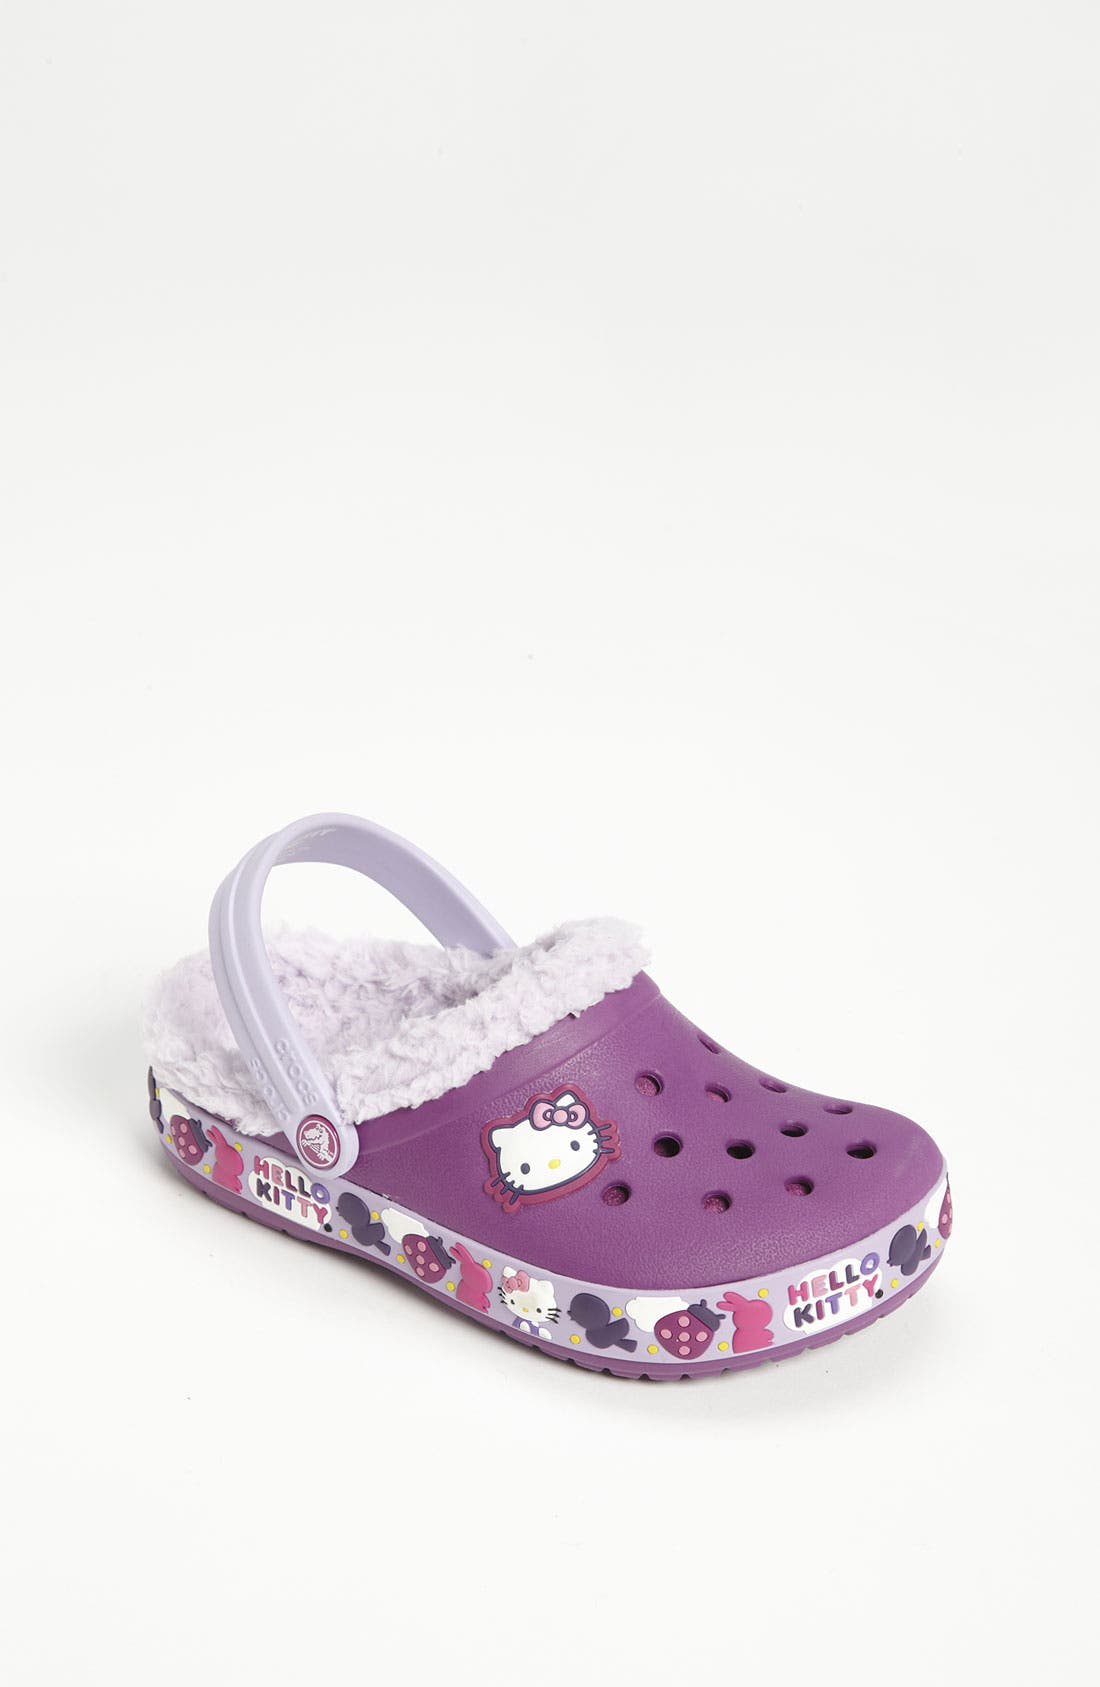 Main Image - CROCS™ 'Hello Kitty®' Slip-On (Walker & Toddler)